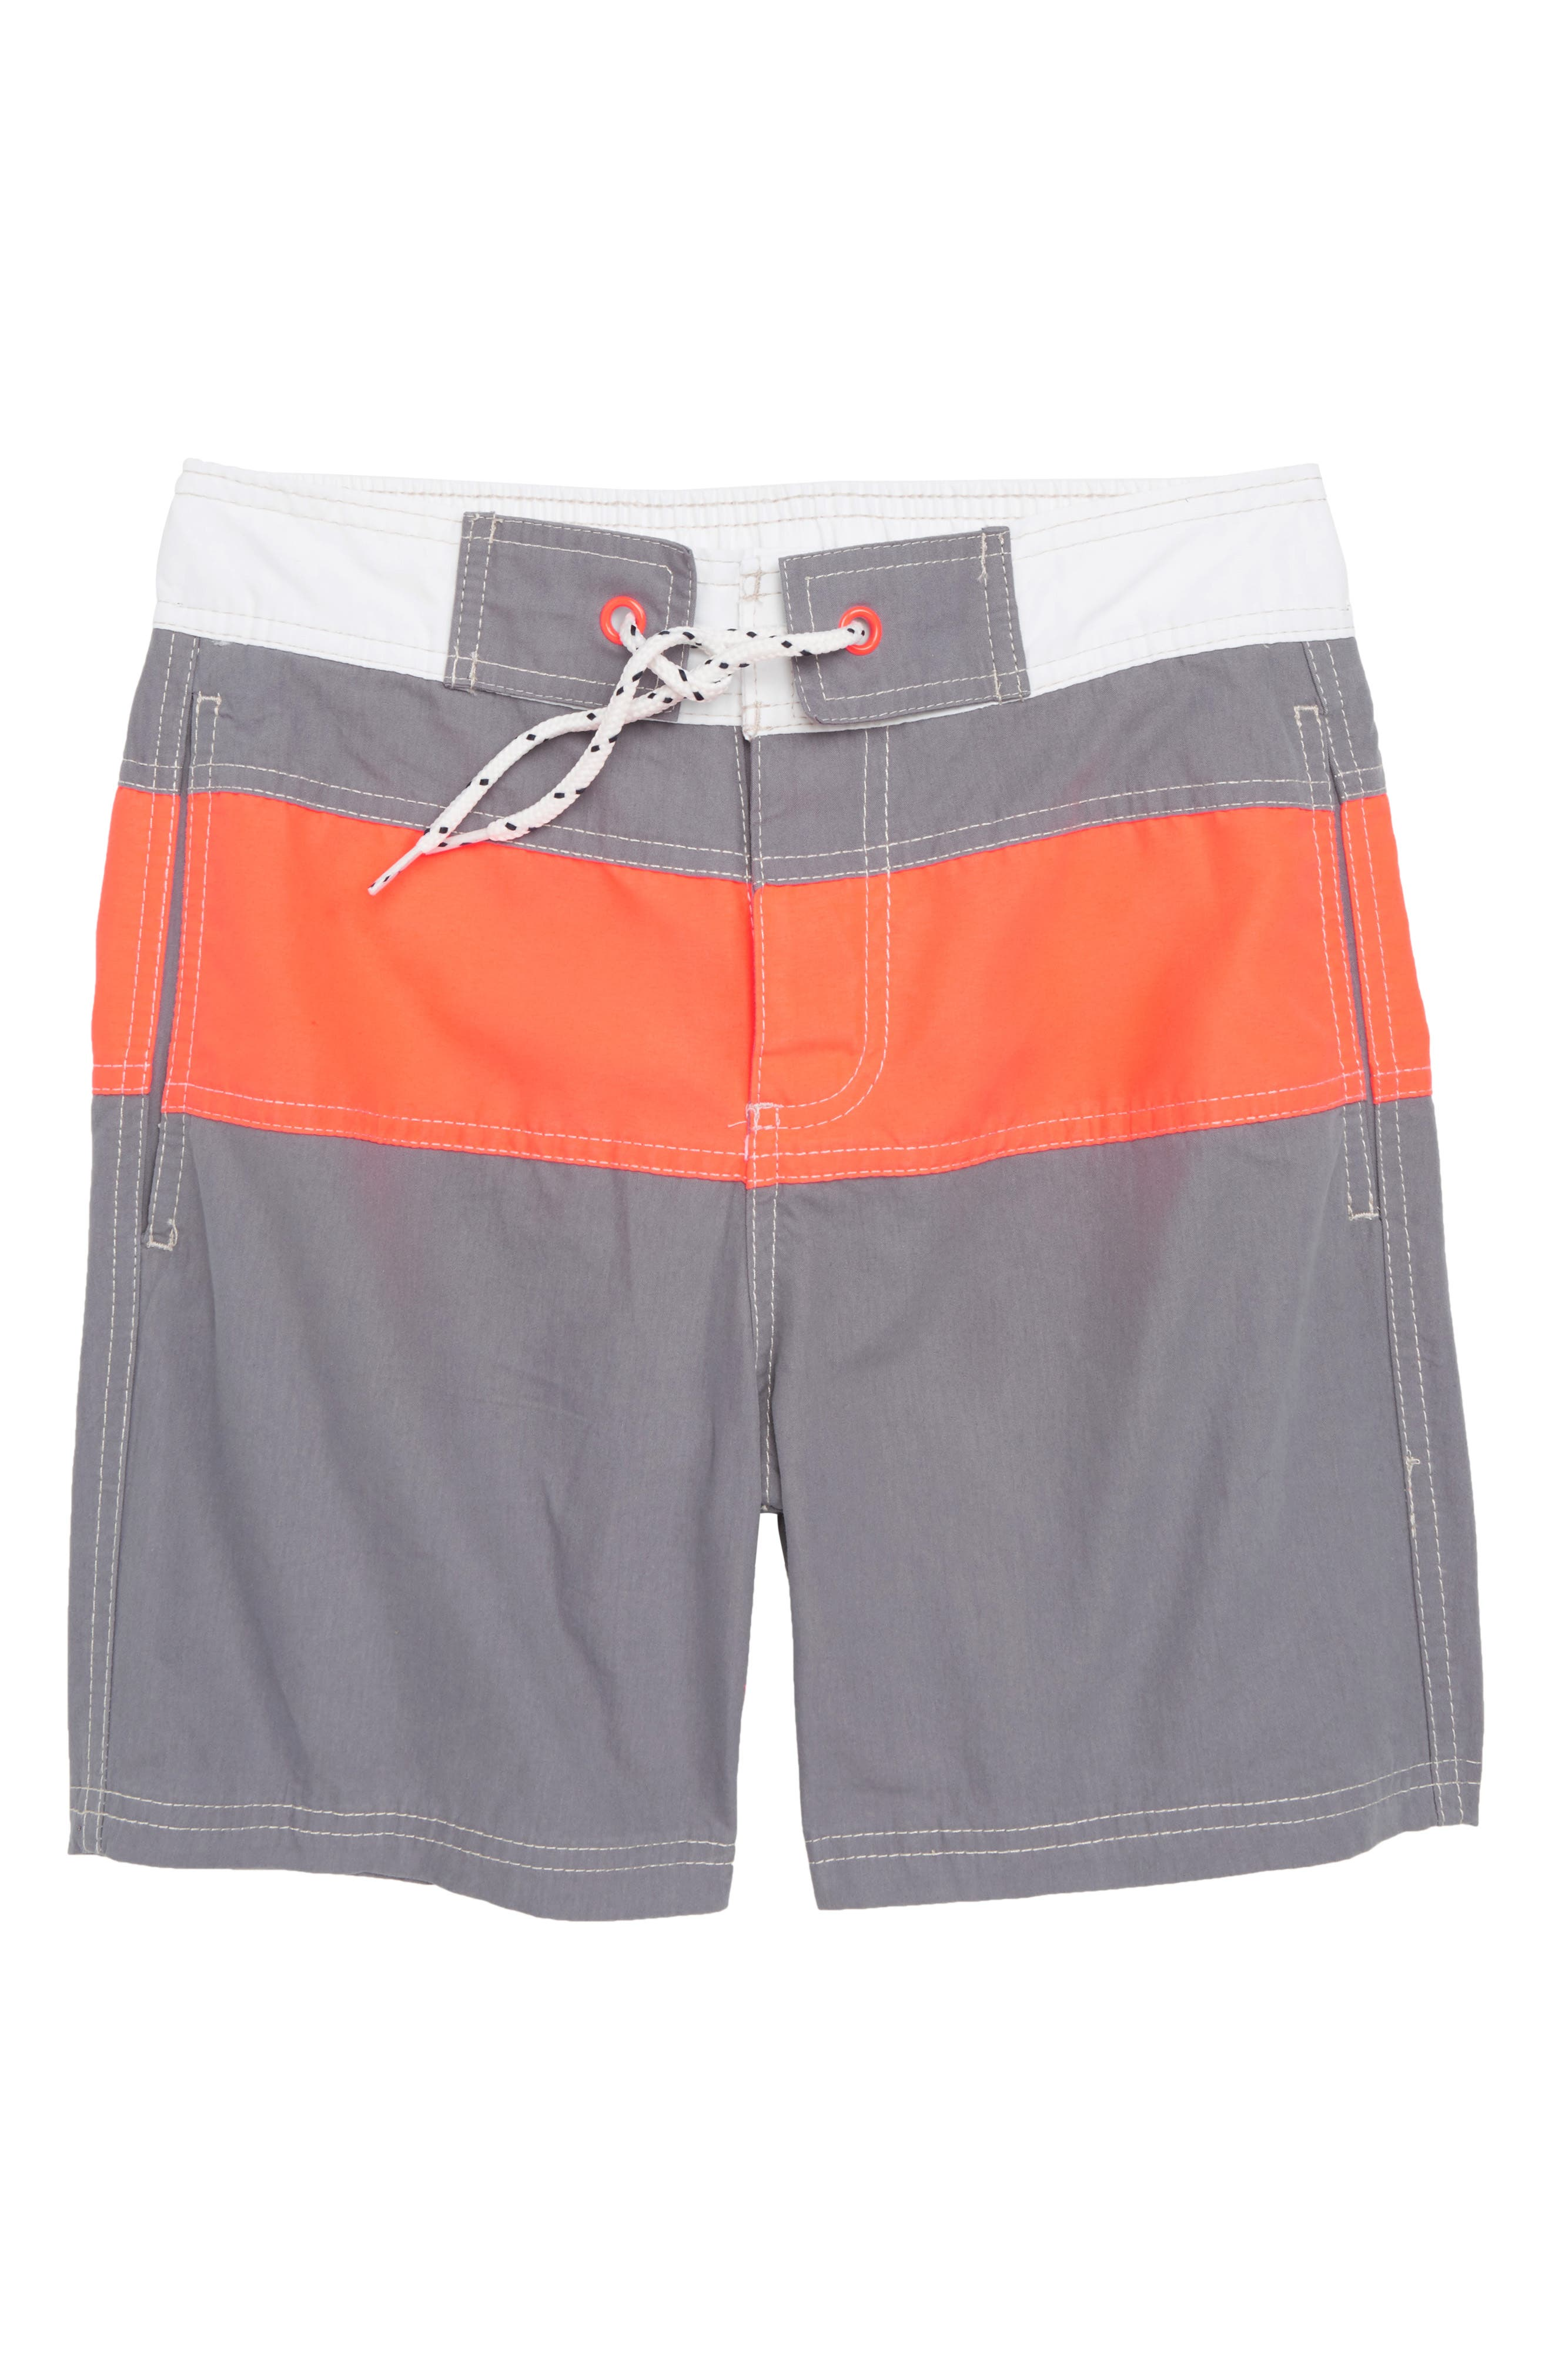 Poolside Swim Trunks,                         Main,                         color, Raft Grey/ Fiery Coral Red